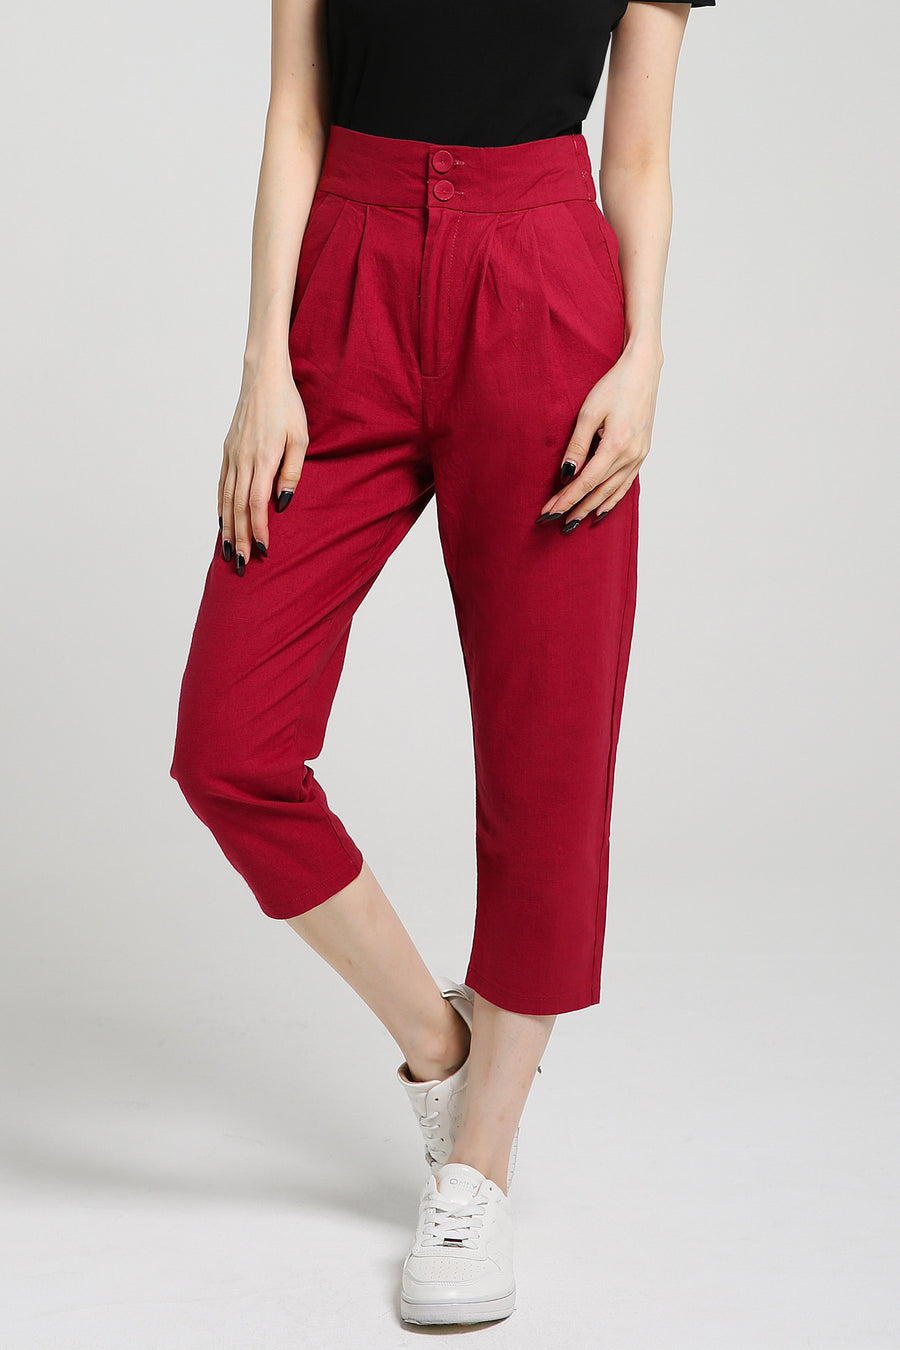 Plain Long Pants 2412 Bottoms